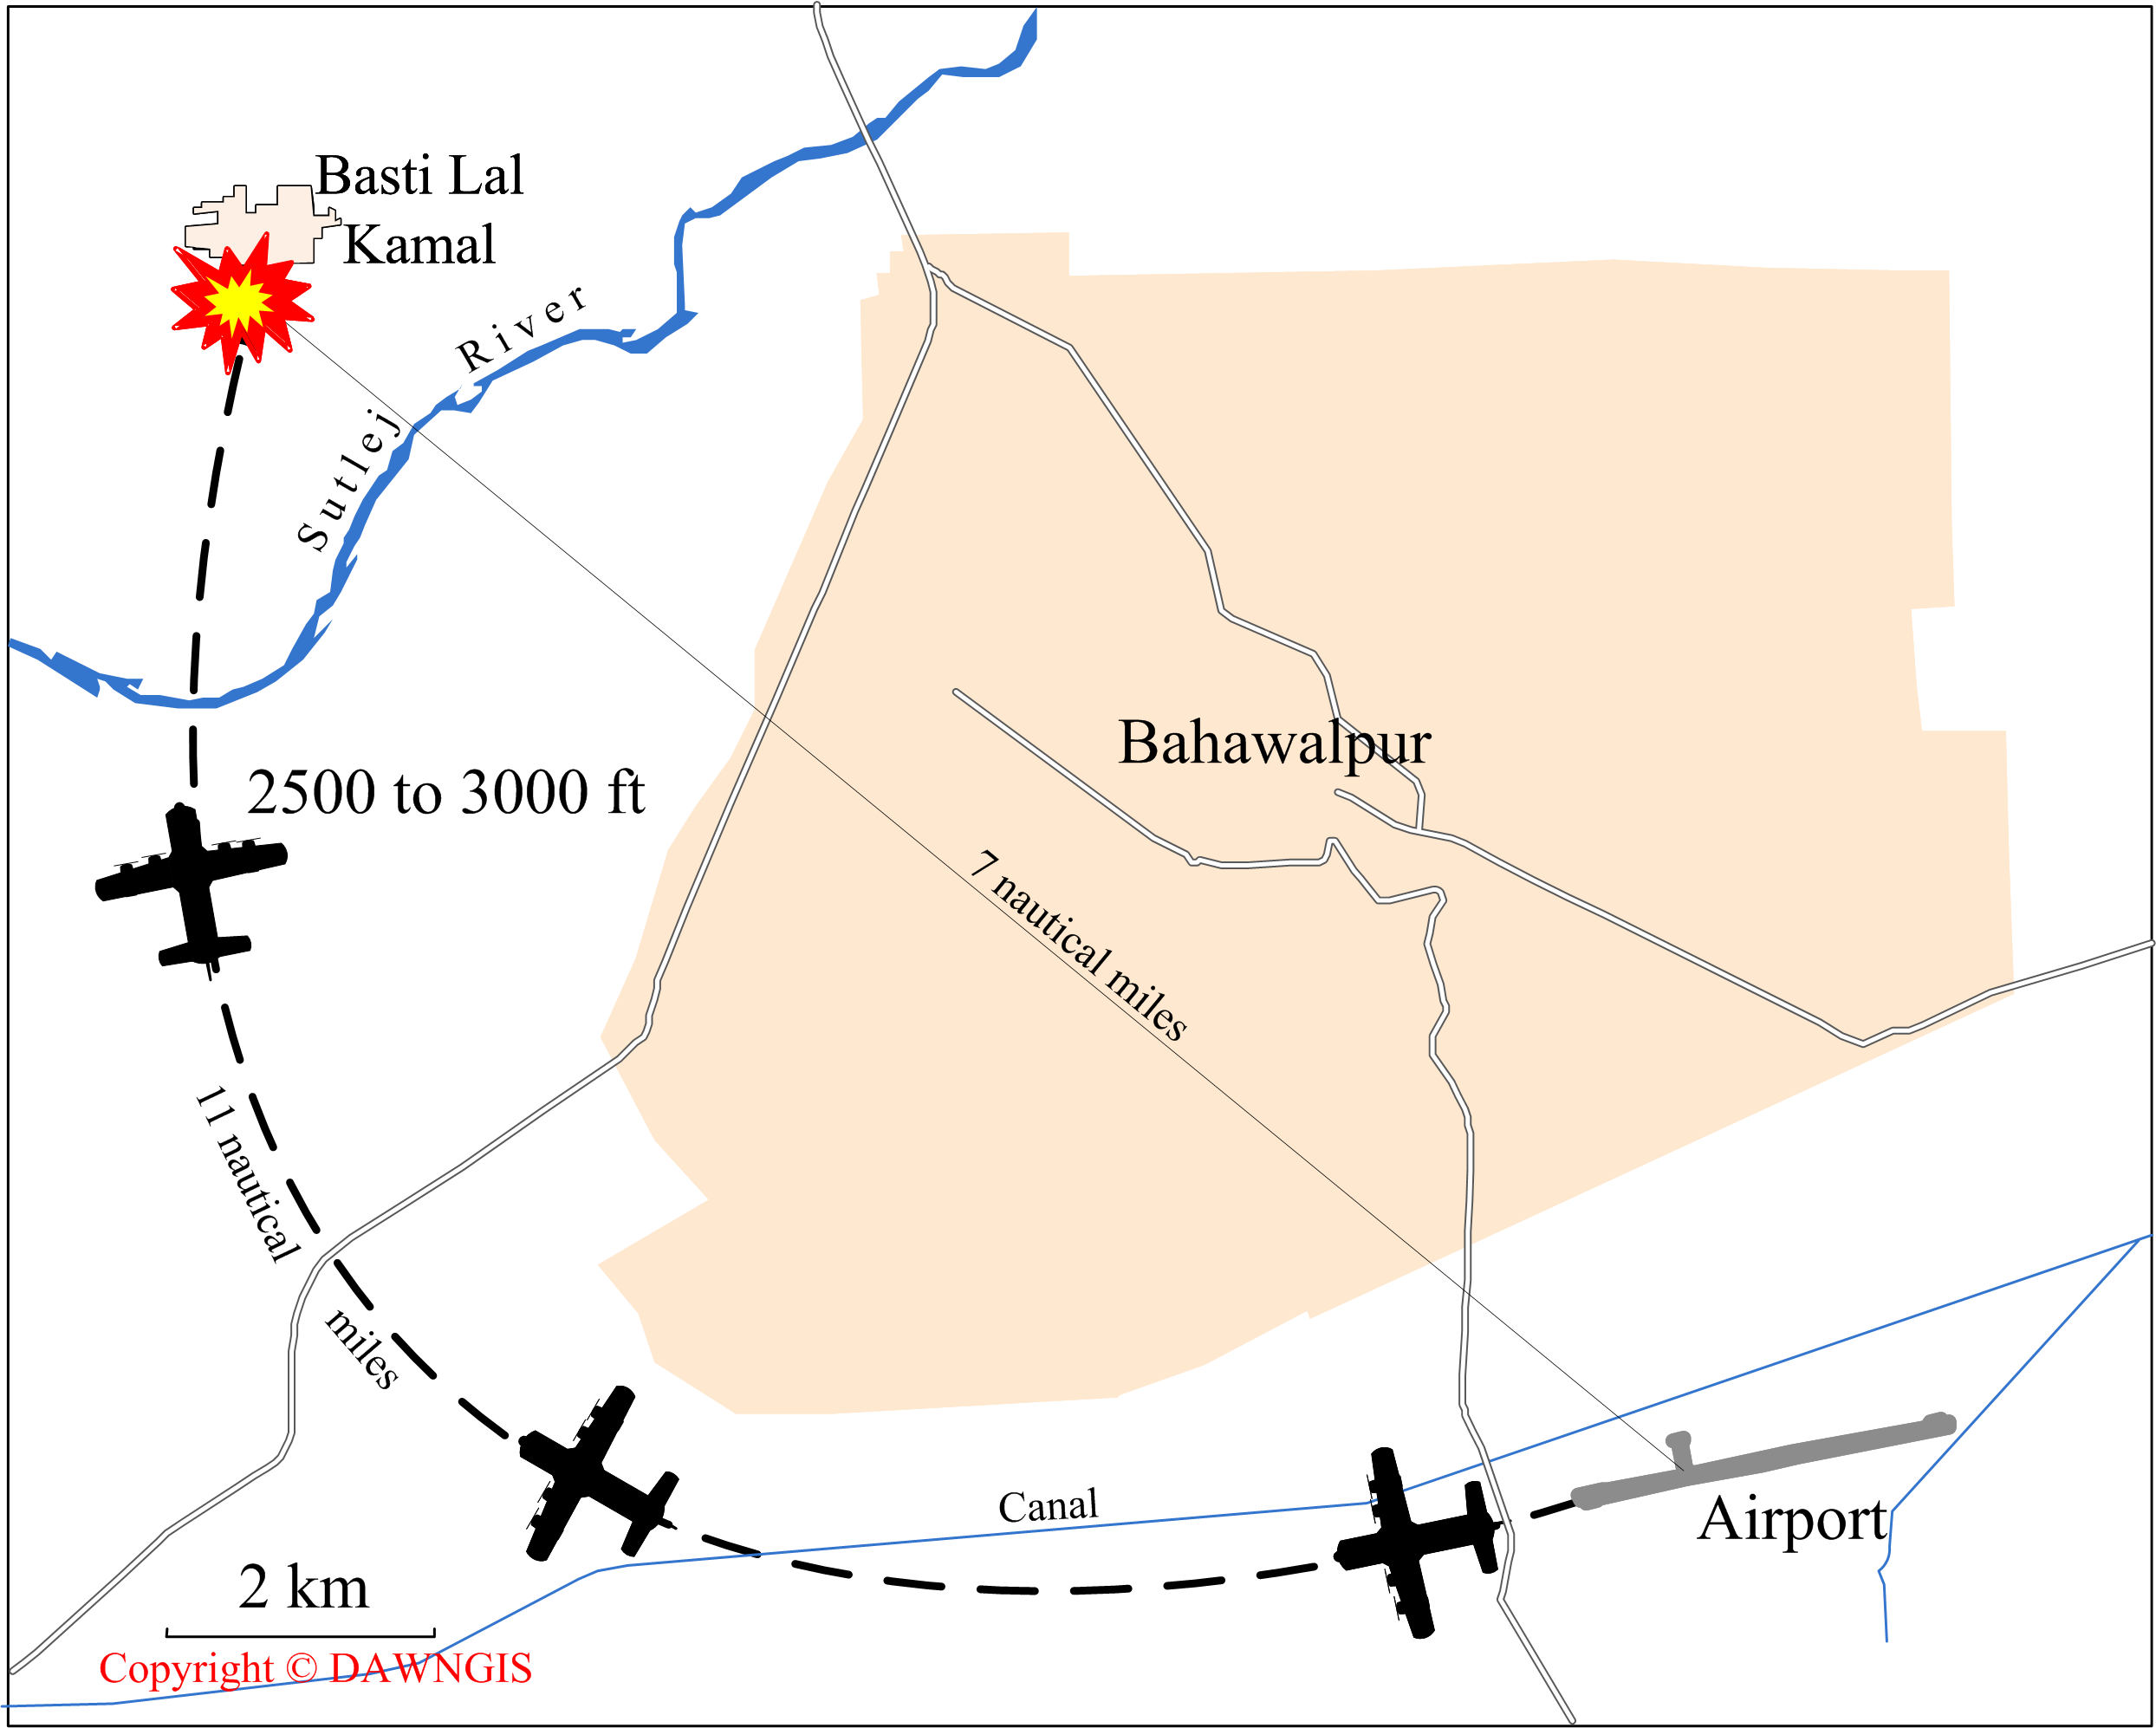 Map showing the route taken by Pak-1 before it crashed across the Sutlej river near Basti Lal Kamal.